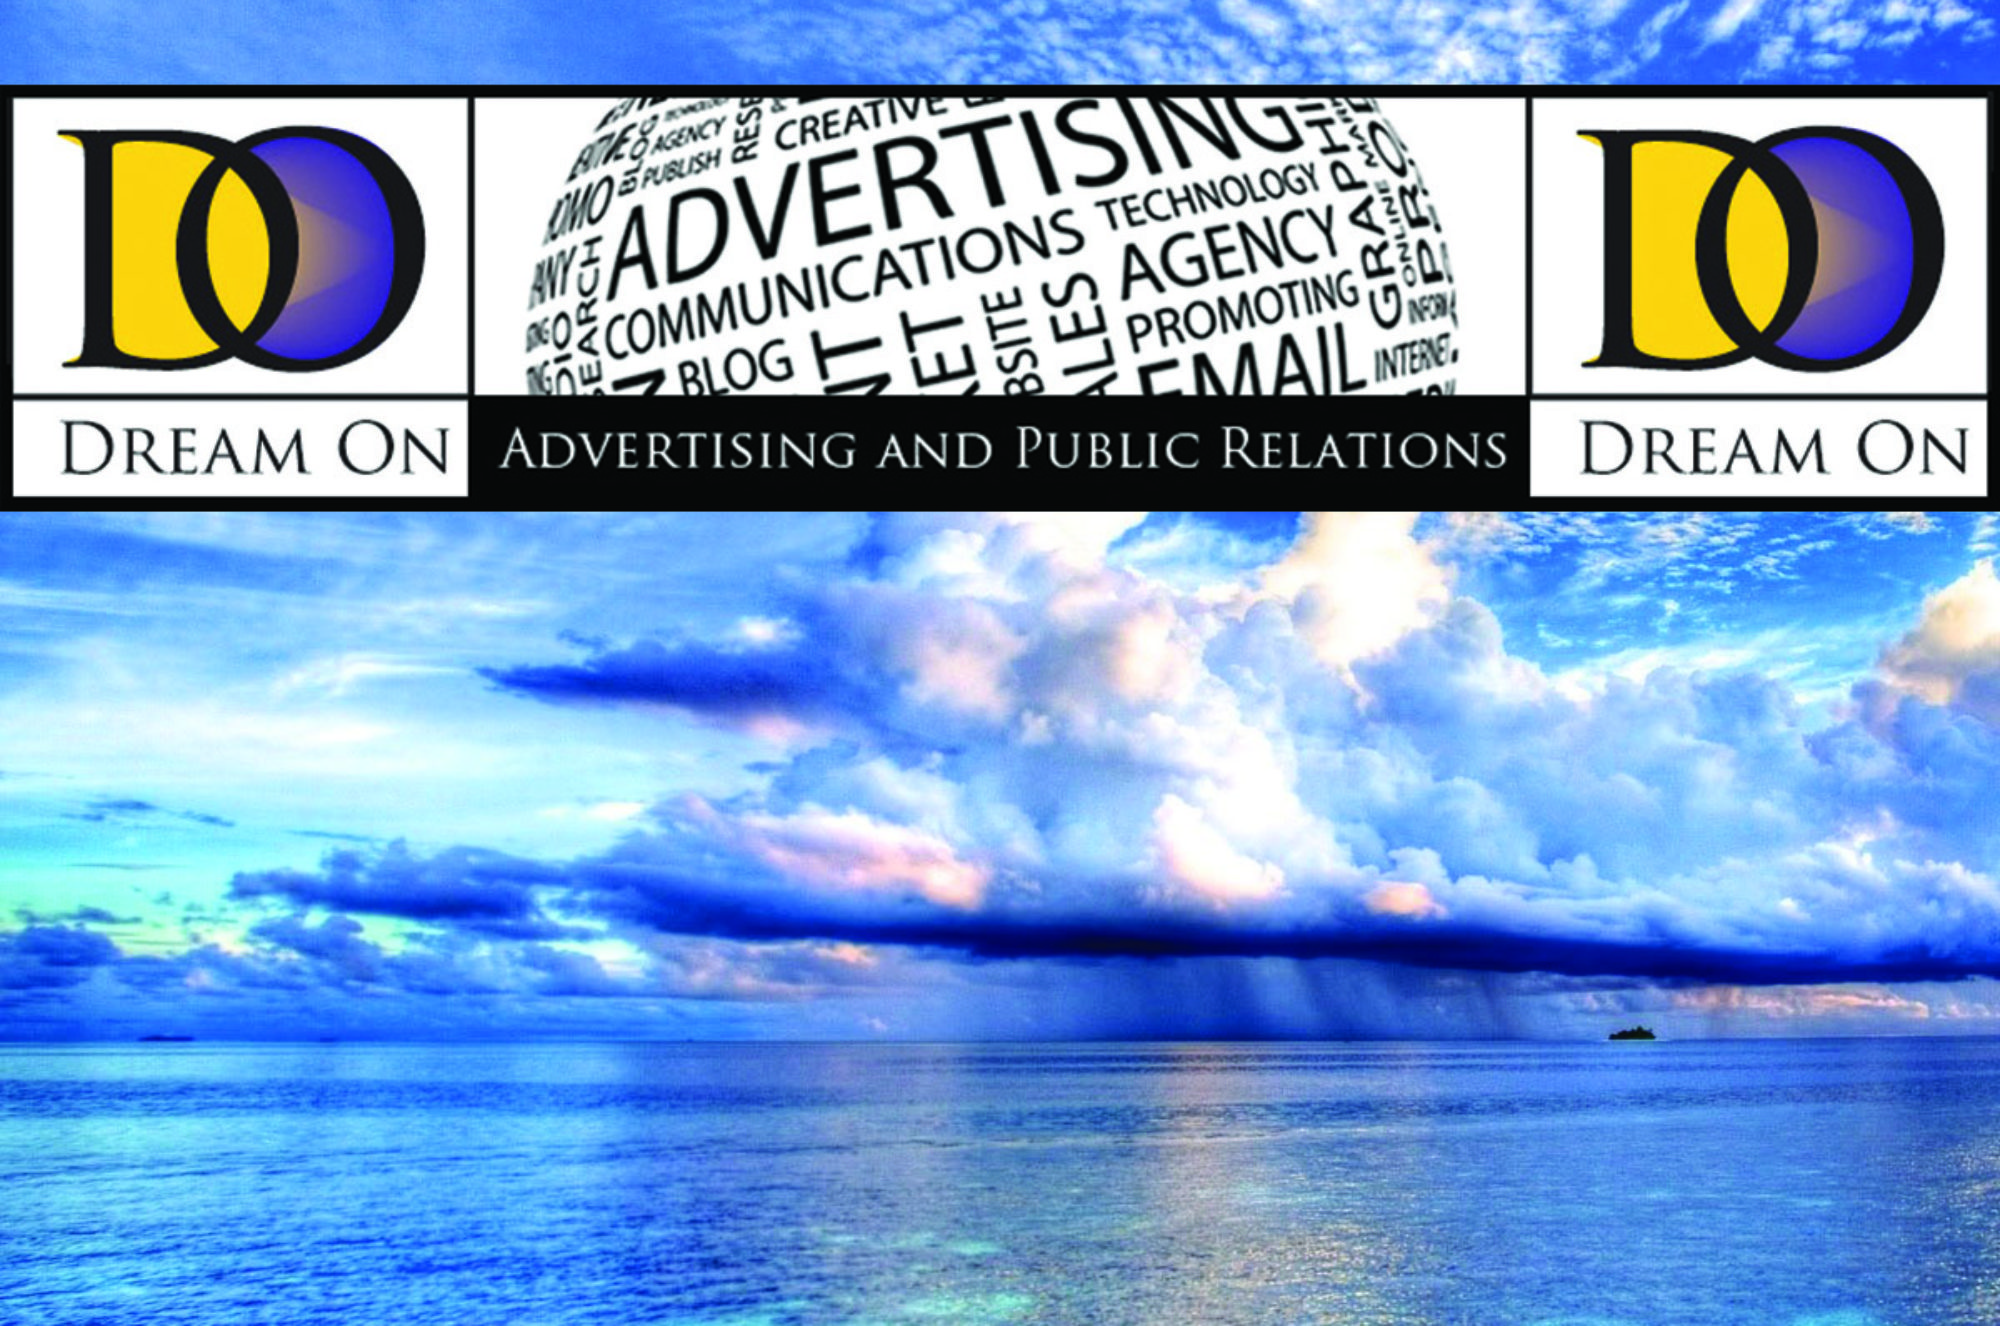 Dream On Advertising and Public Relations